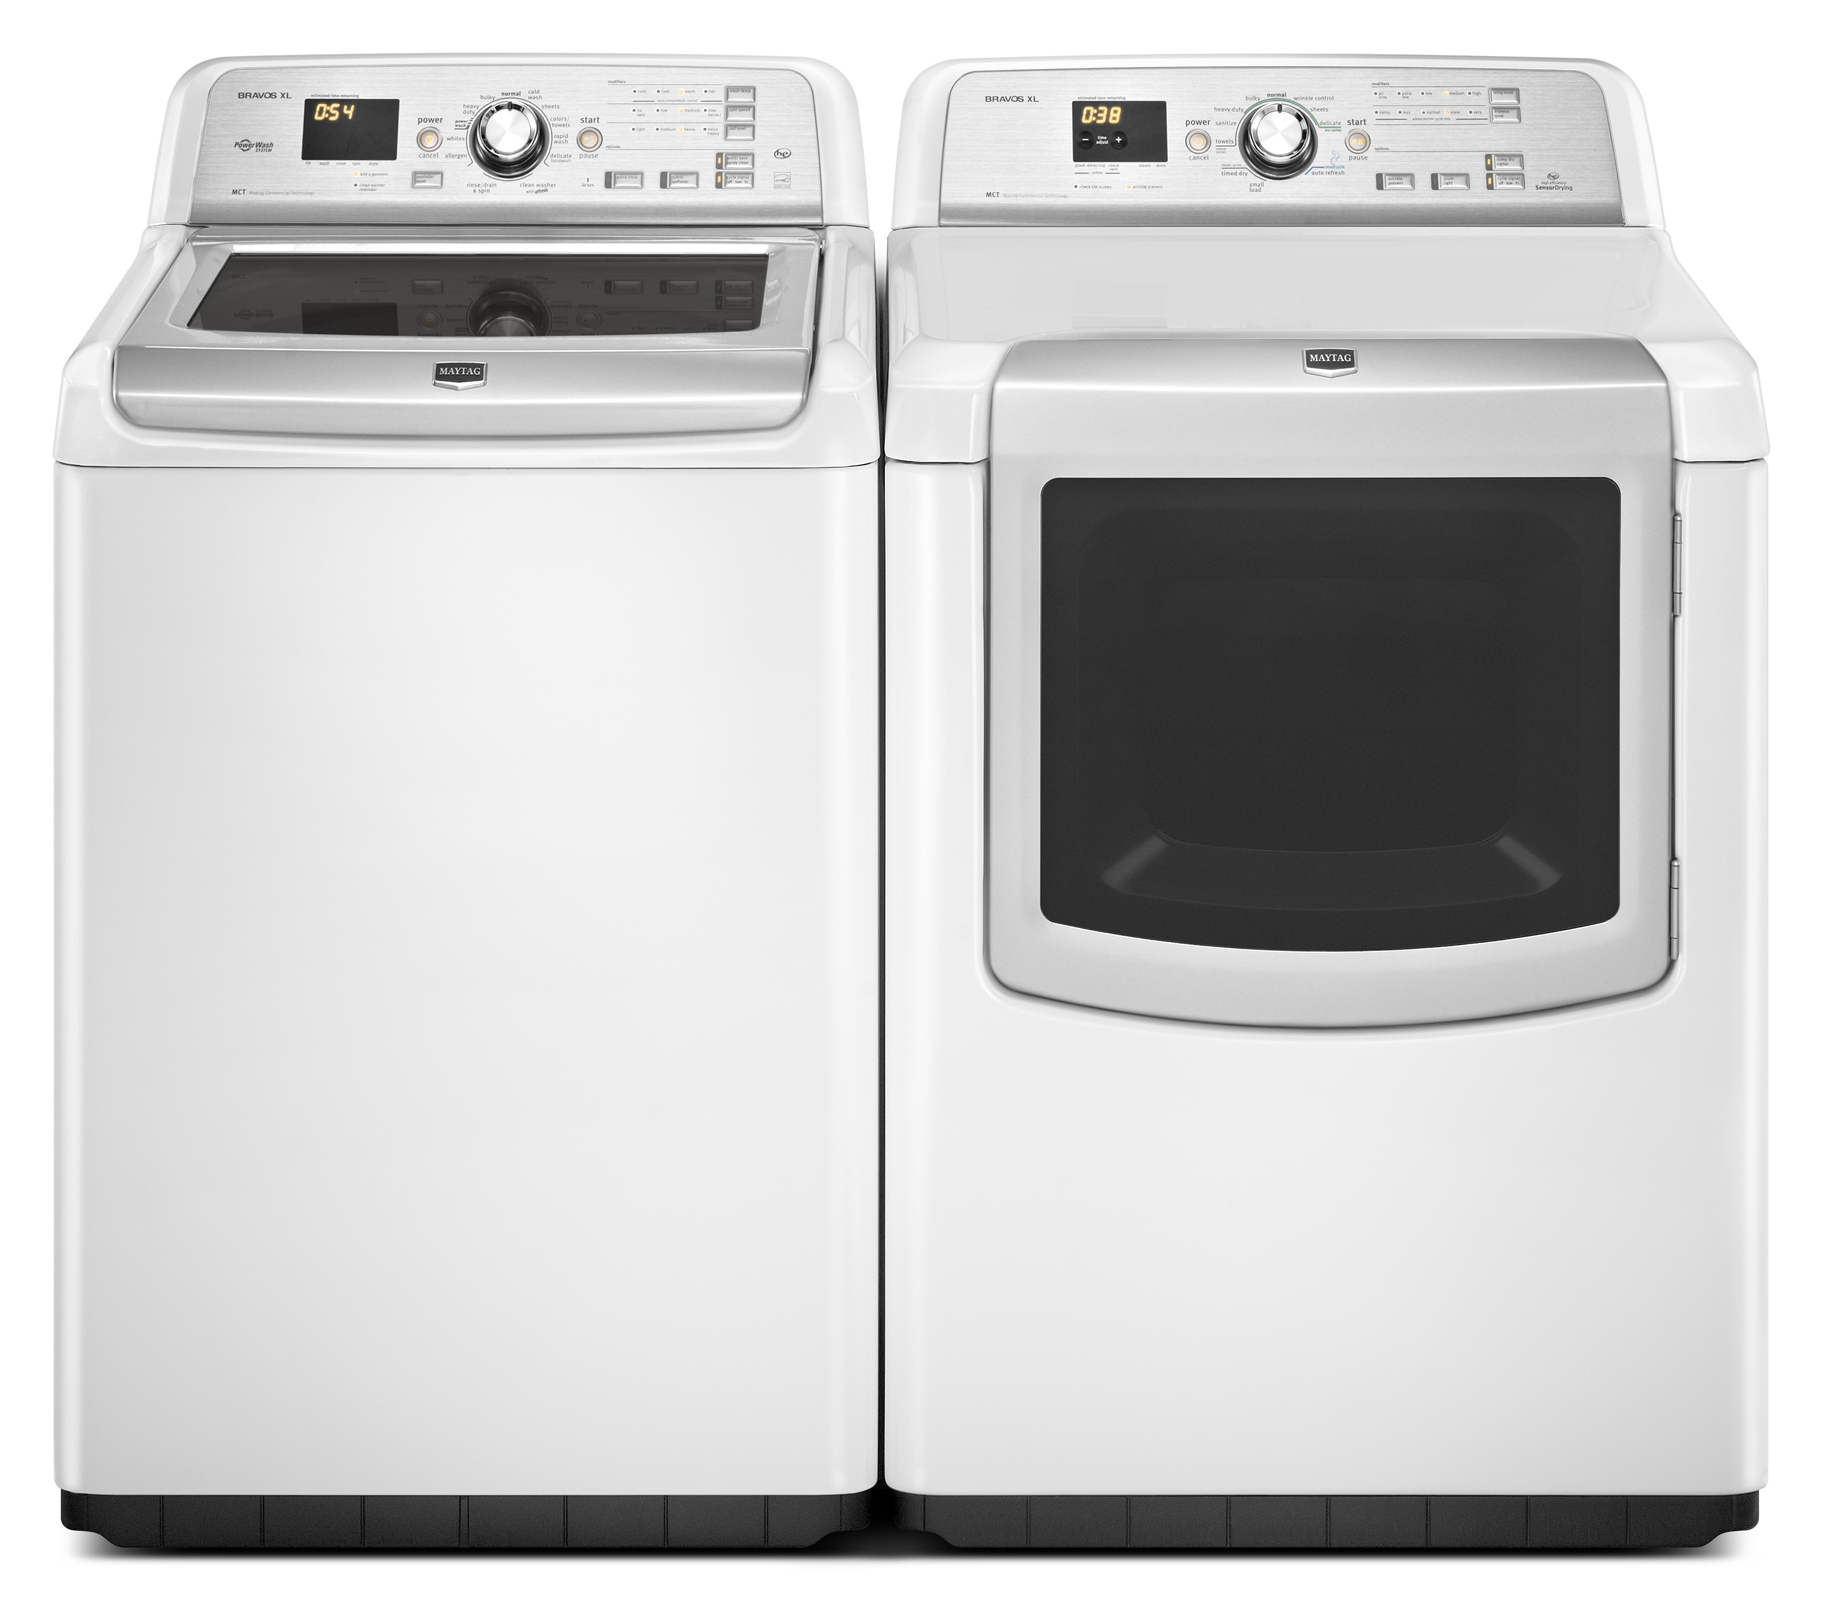 Maytag MVWB880BW 4.8 cu. ft. Bravos XL® High-Efficiency Top-Load Washer - White